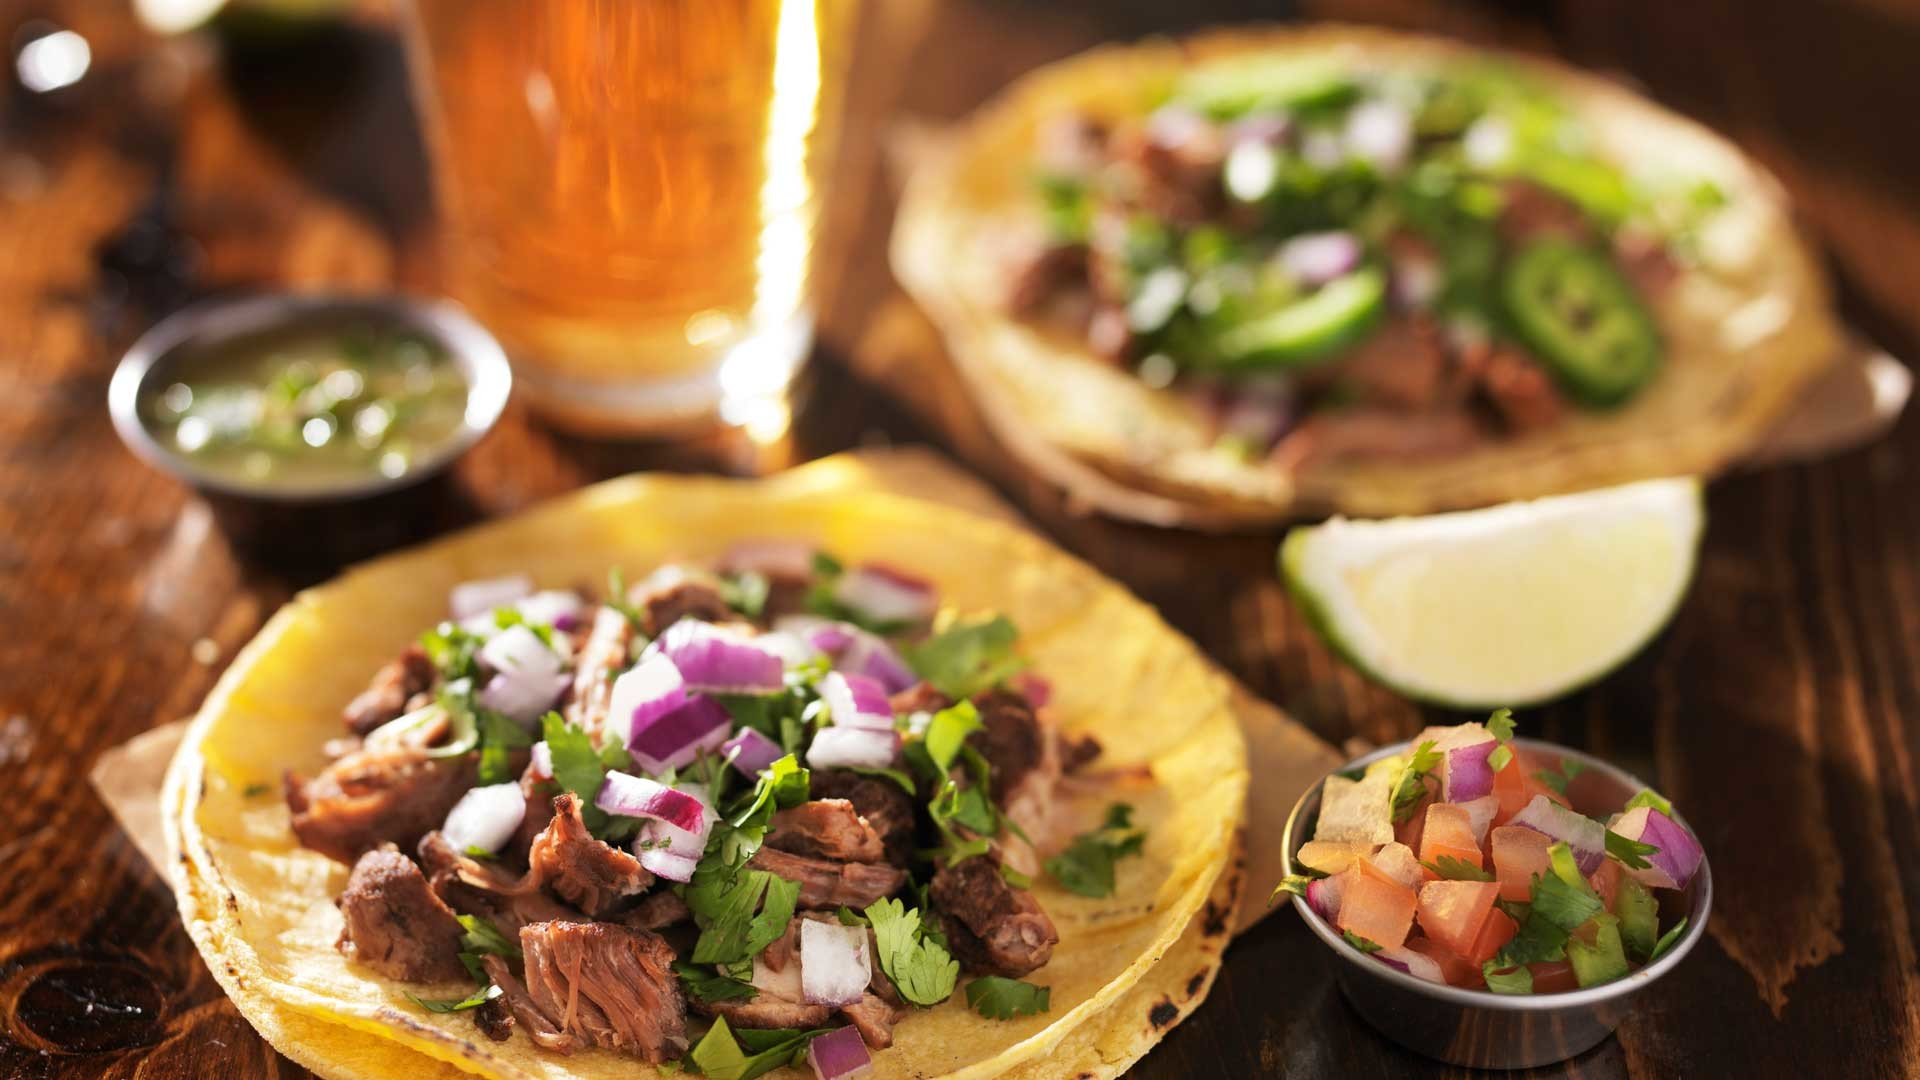 Top 6 Authentic Mexican Restaurants in Greater Palm Springs